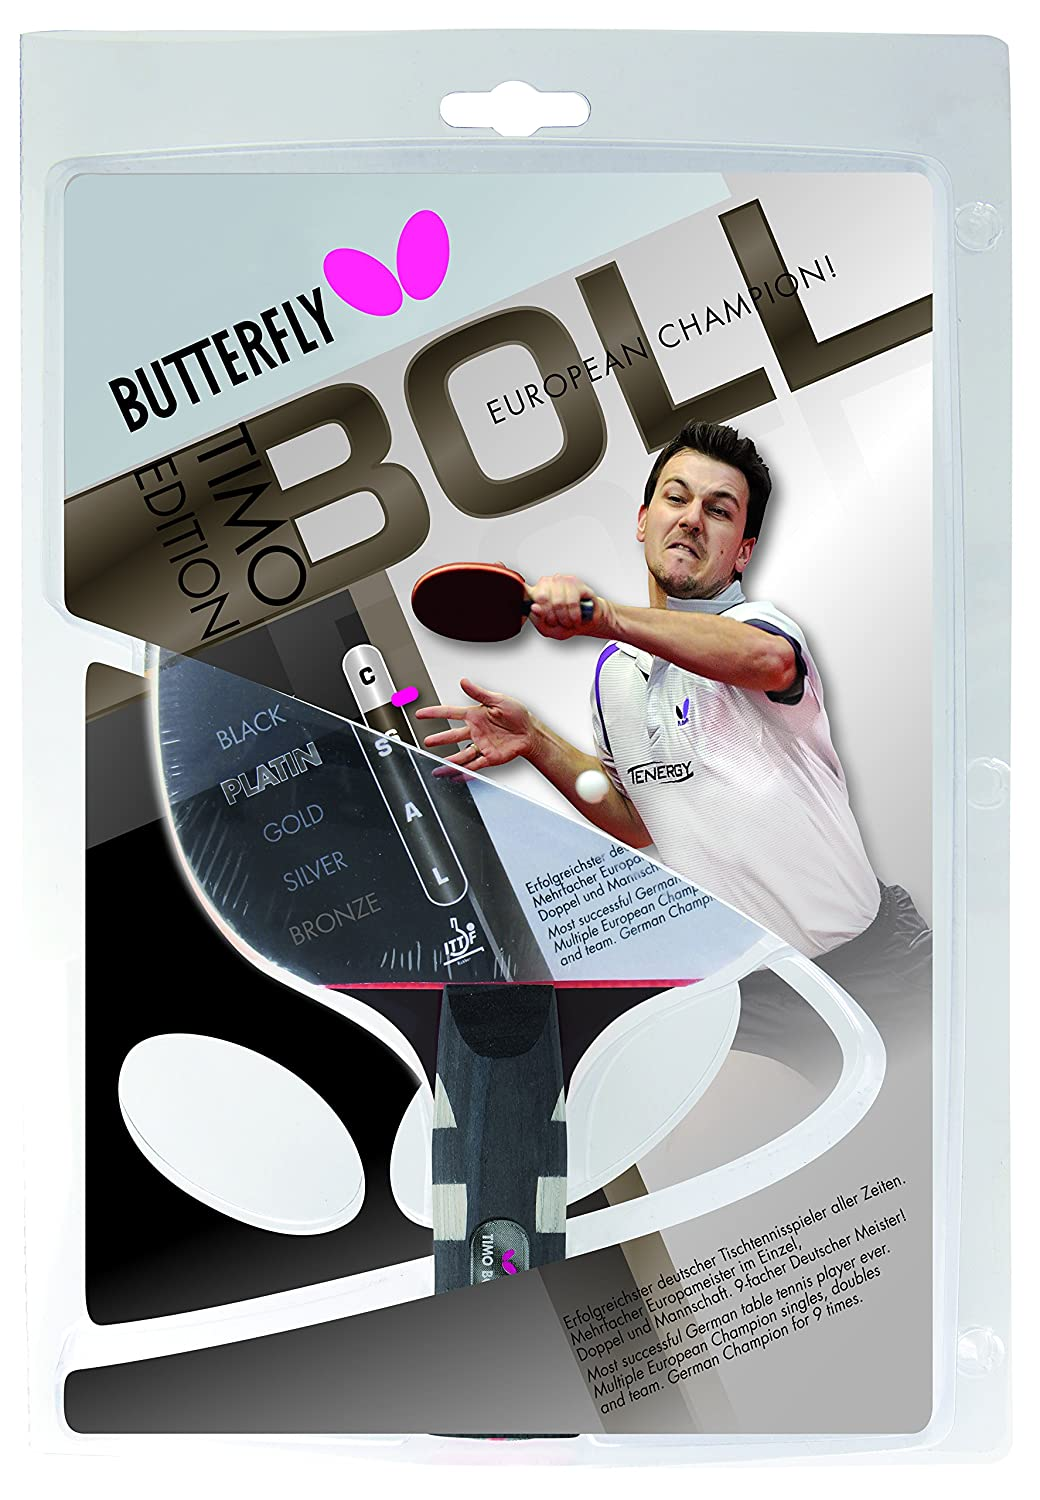 Amazon.com : Butterfly Timo Boll Platin Table Tennis Bat - Multi-Colour : Sports & Outdoors